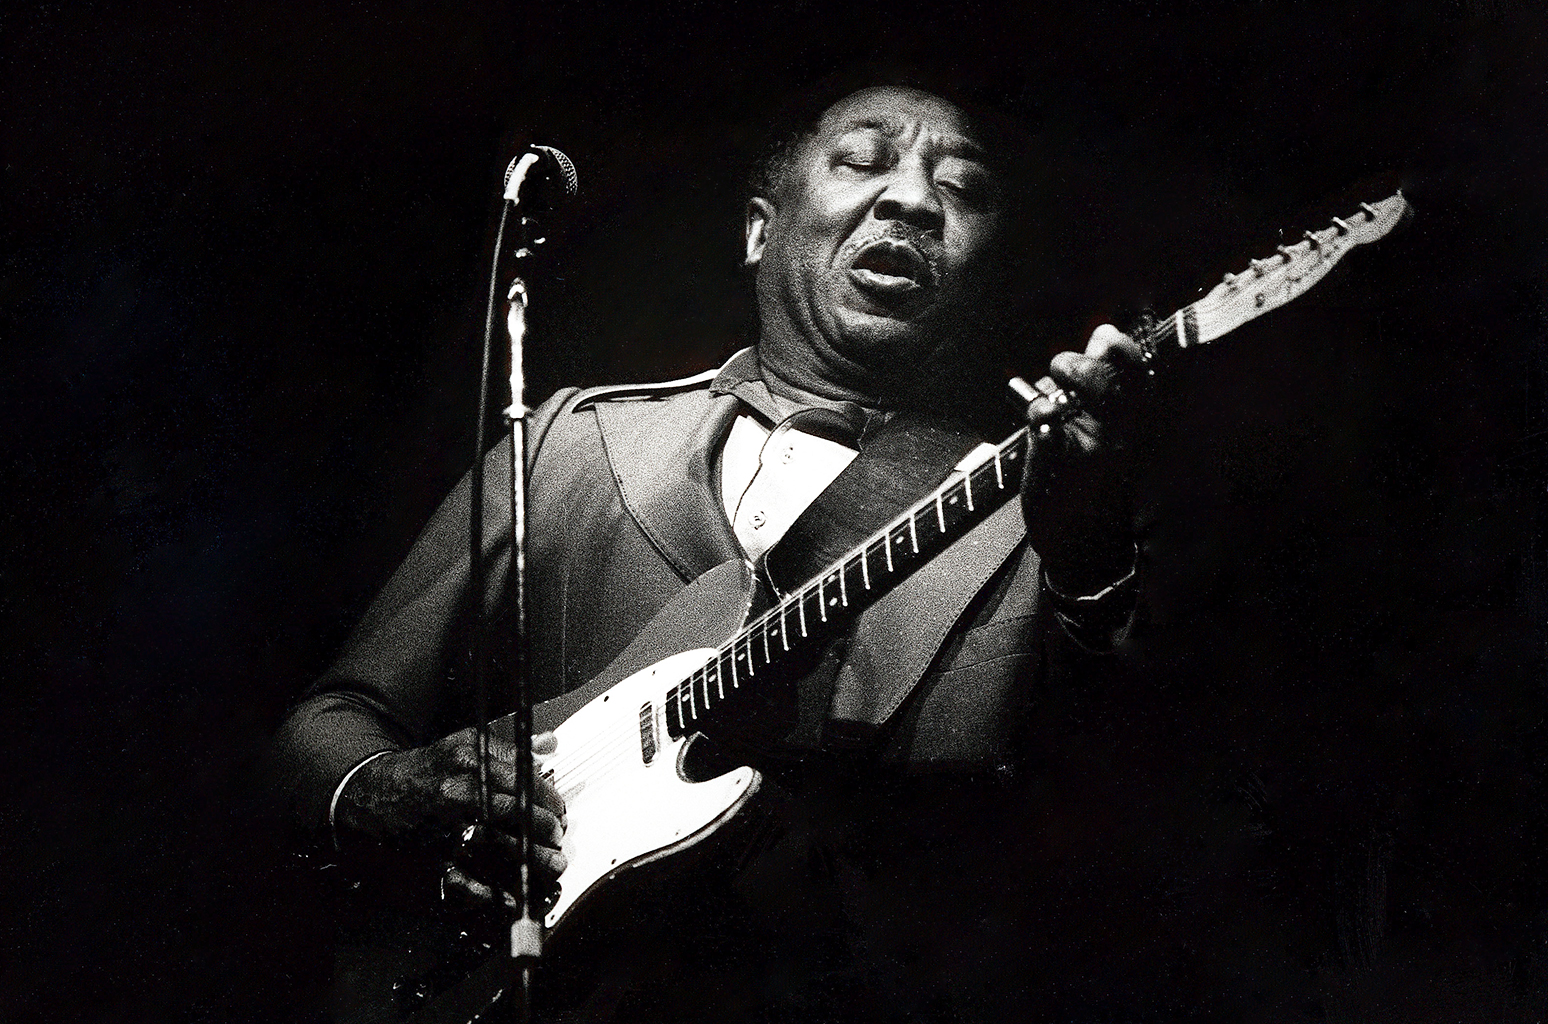 Big influencer Muddy Waters. But what's original? That's another topic of murky waters